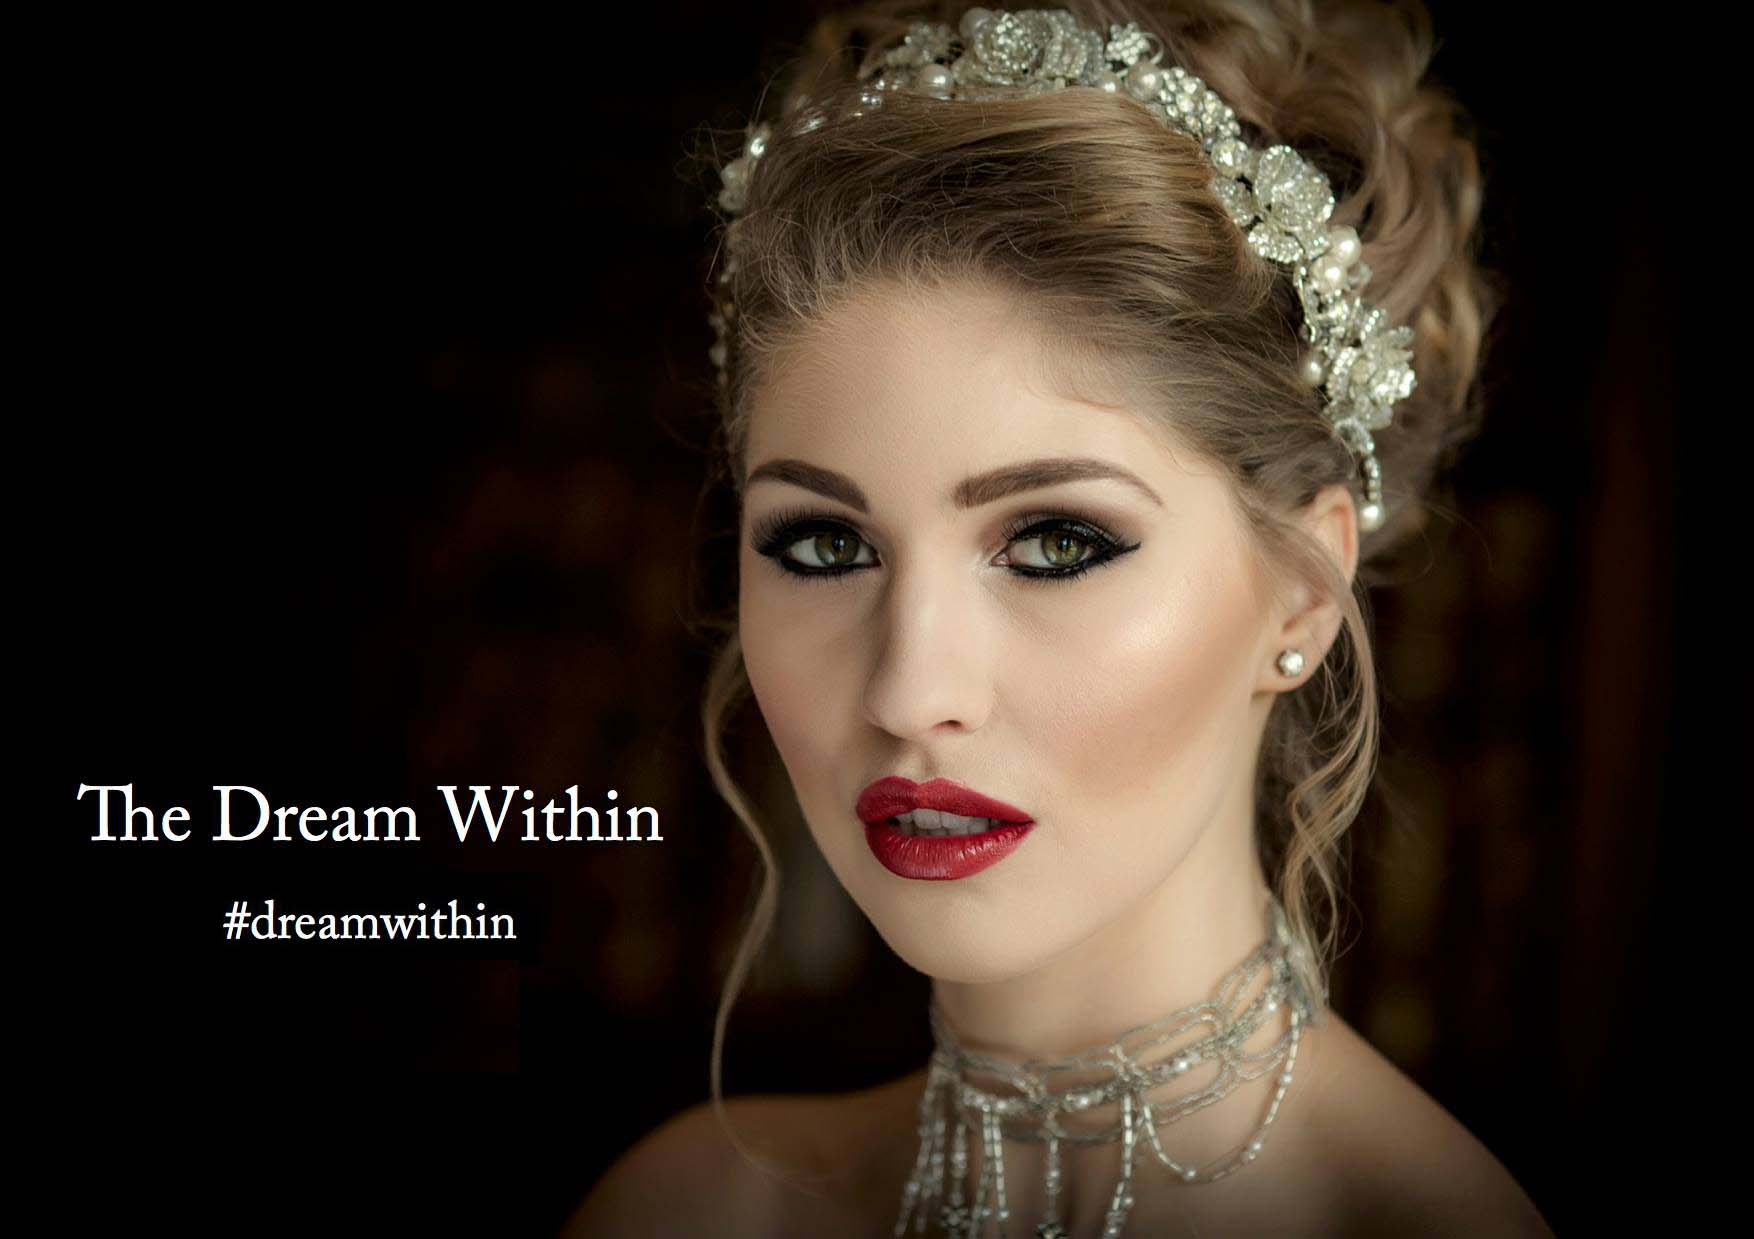 (c) The Dream Within 2016